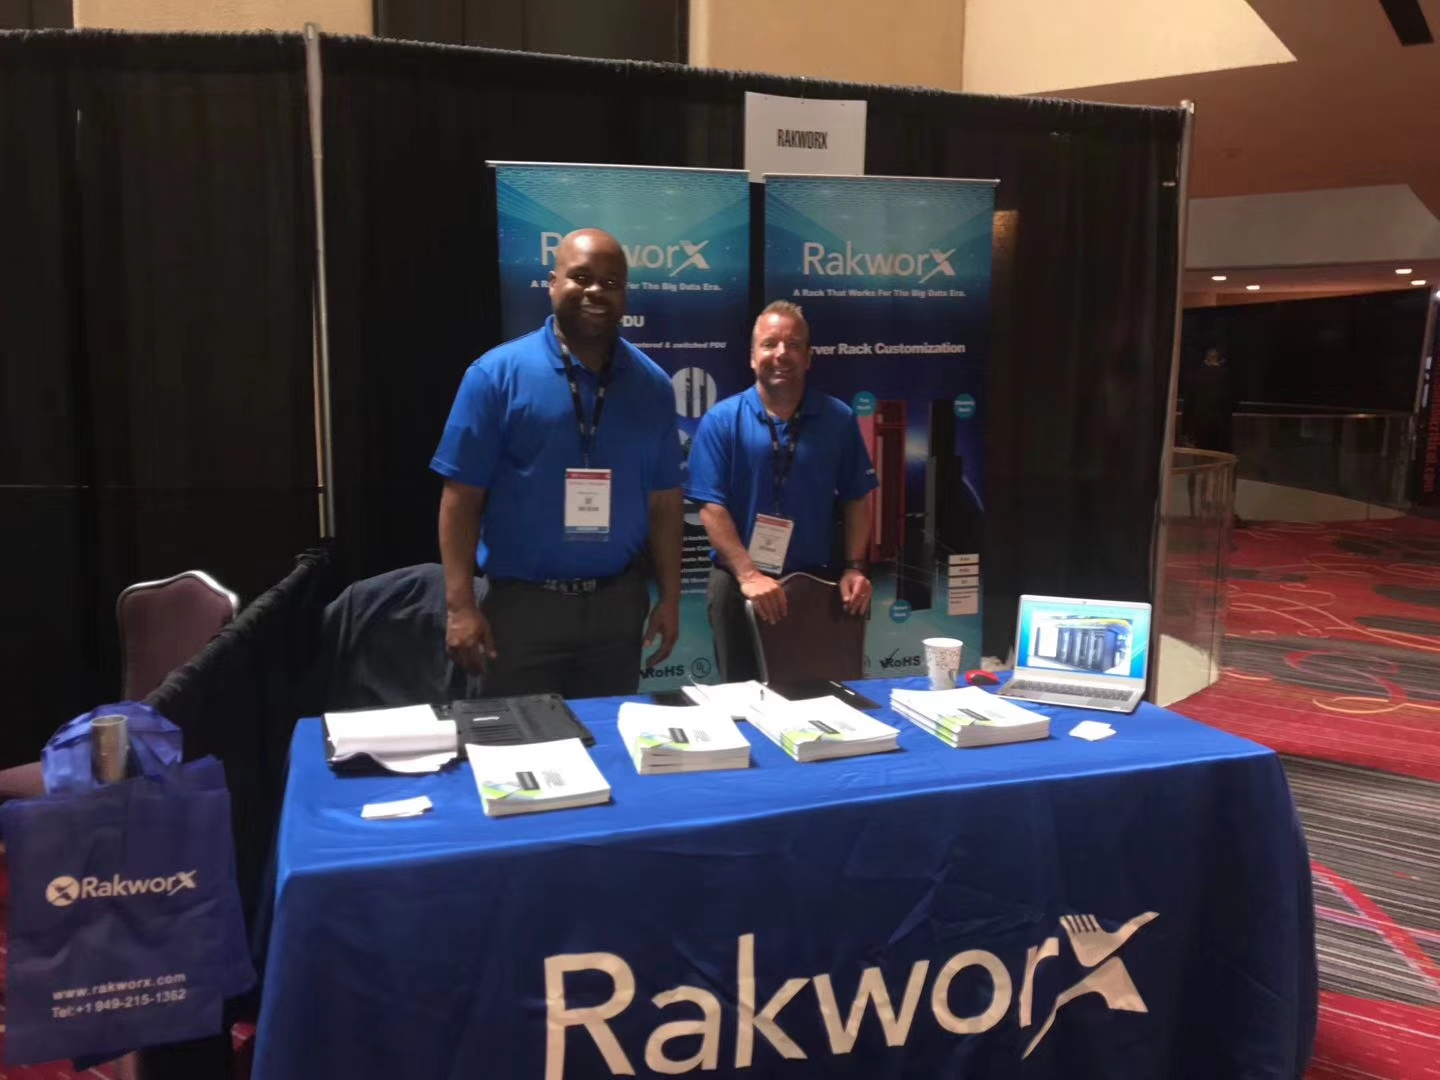 RakworX at DCD 2018 in New York